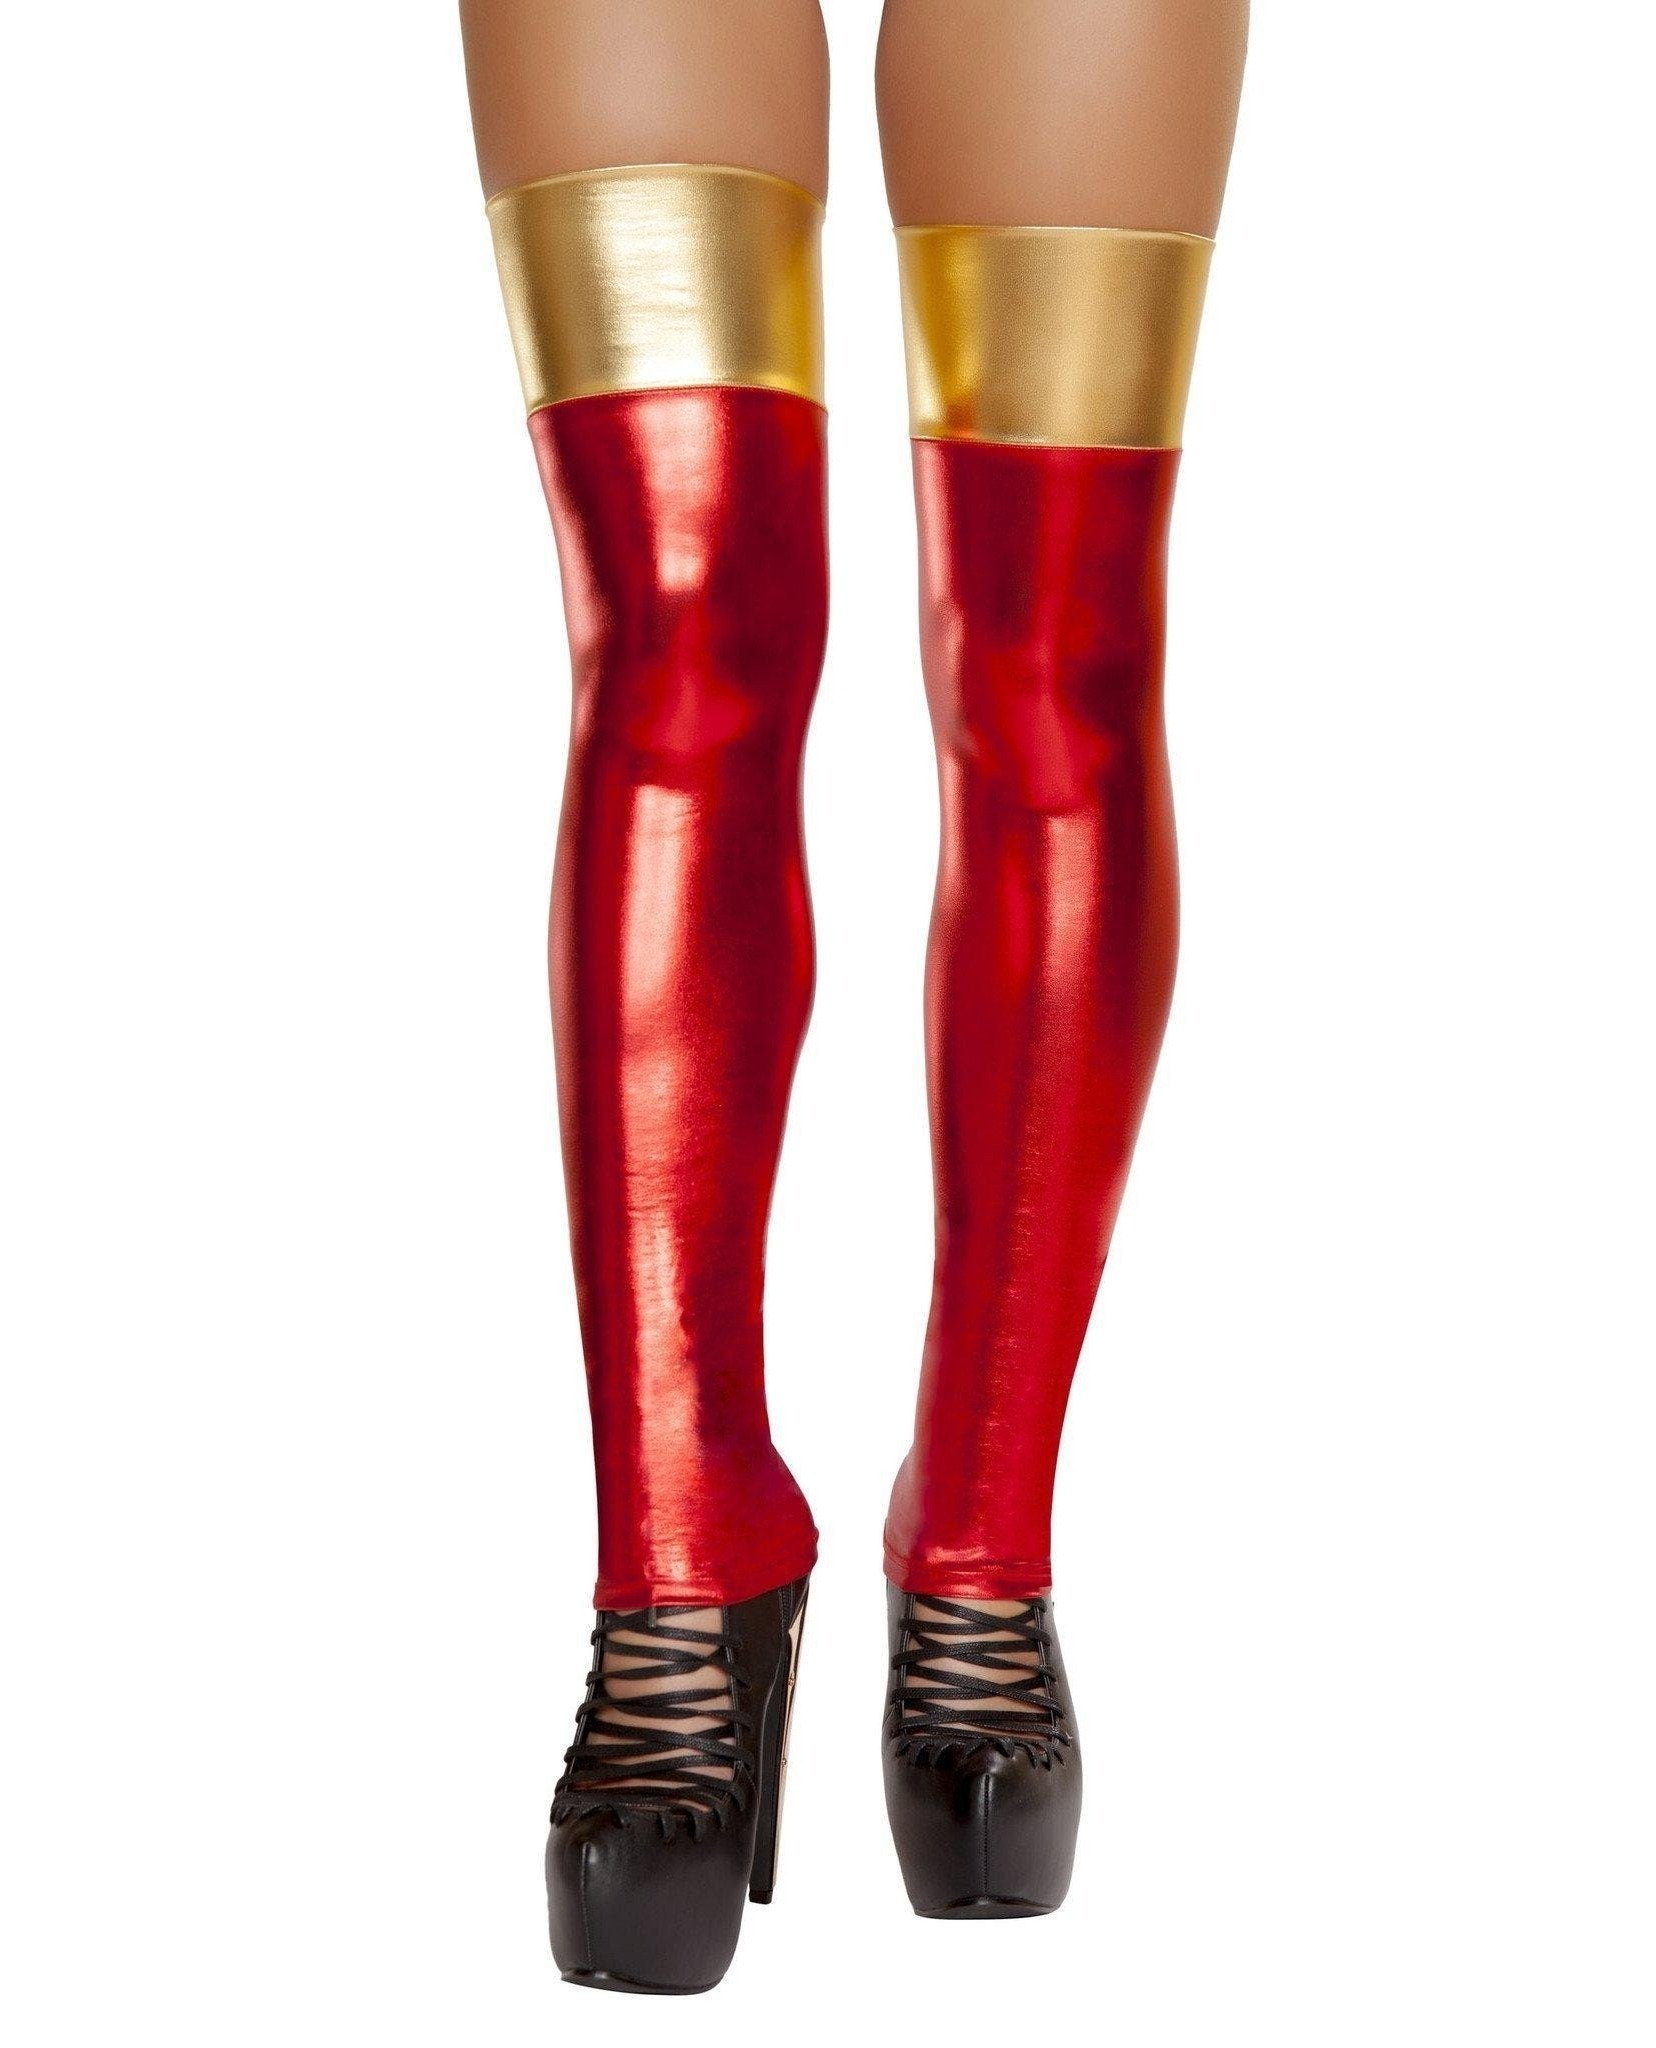 Iron Woman Thigh High Stockings-Costumes, accessories-Roma Costume-One Size-Red/Gold-Nakees